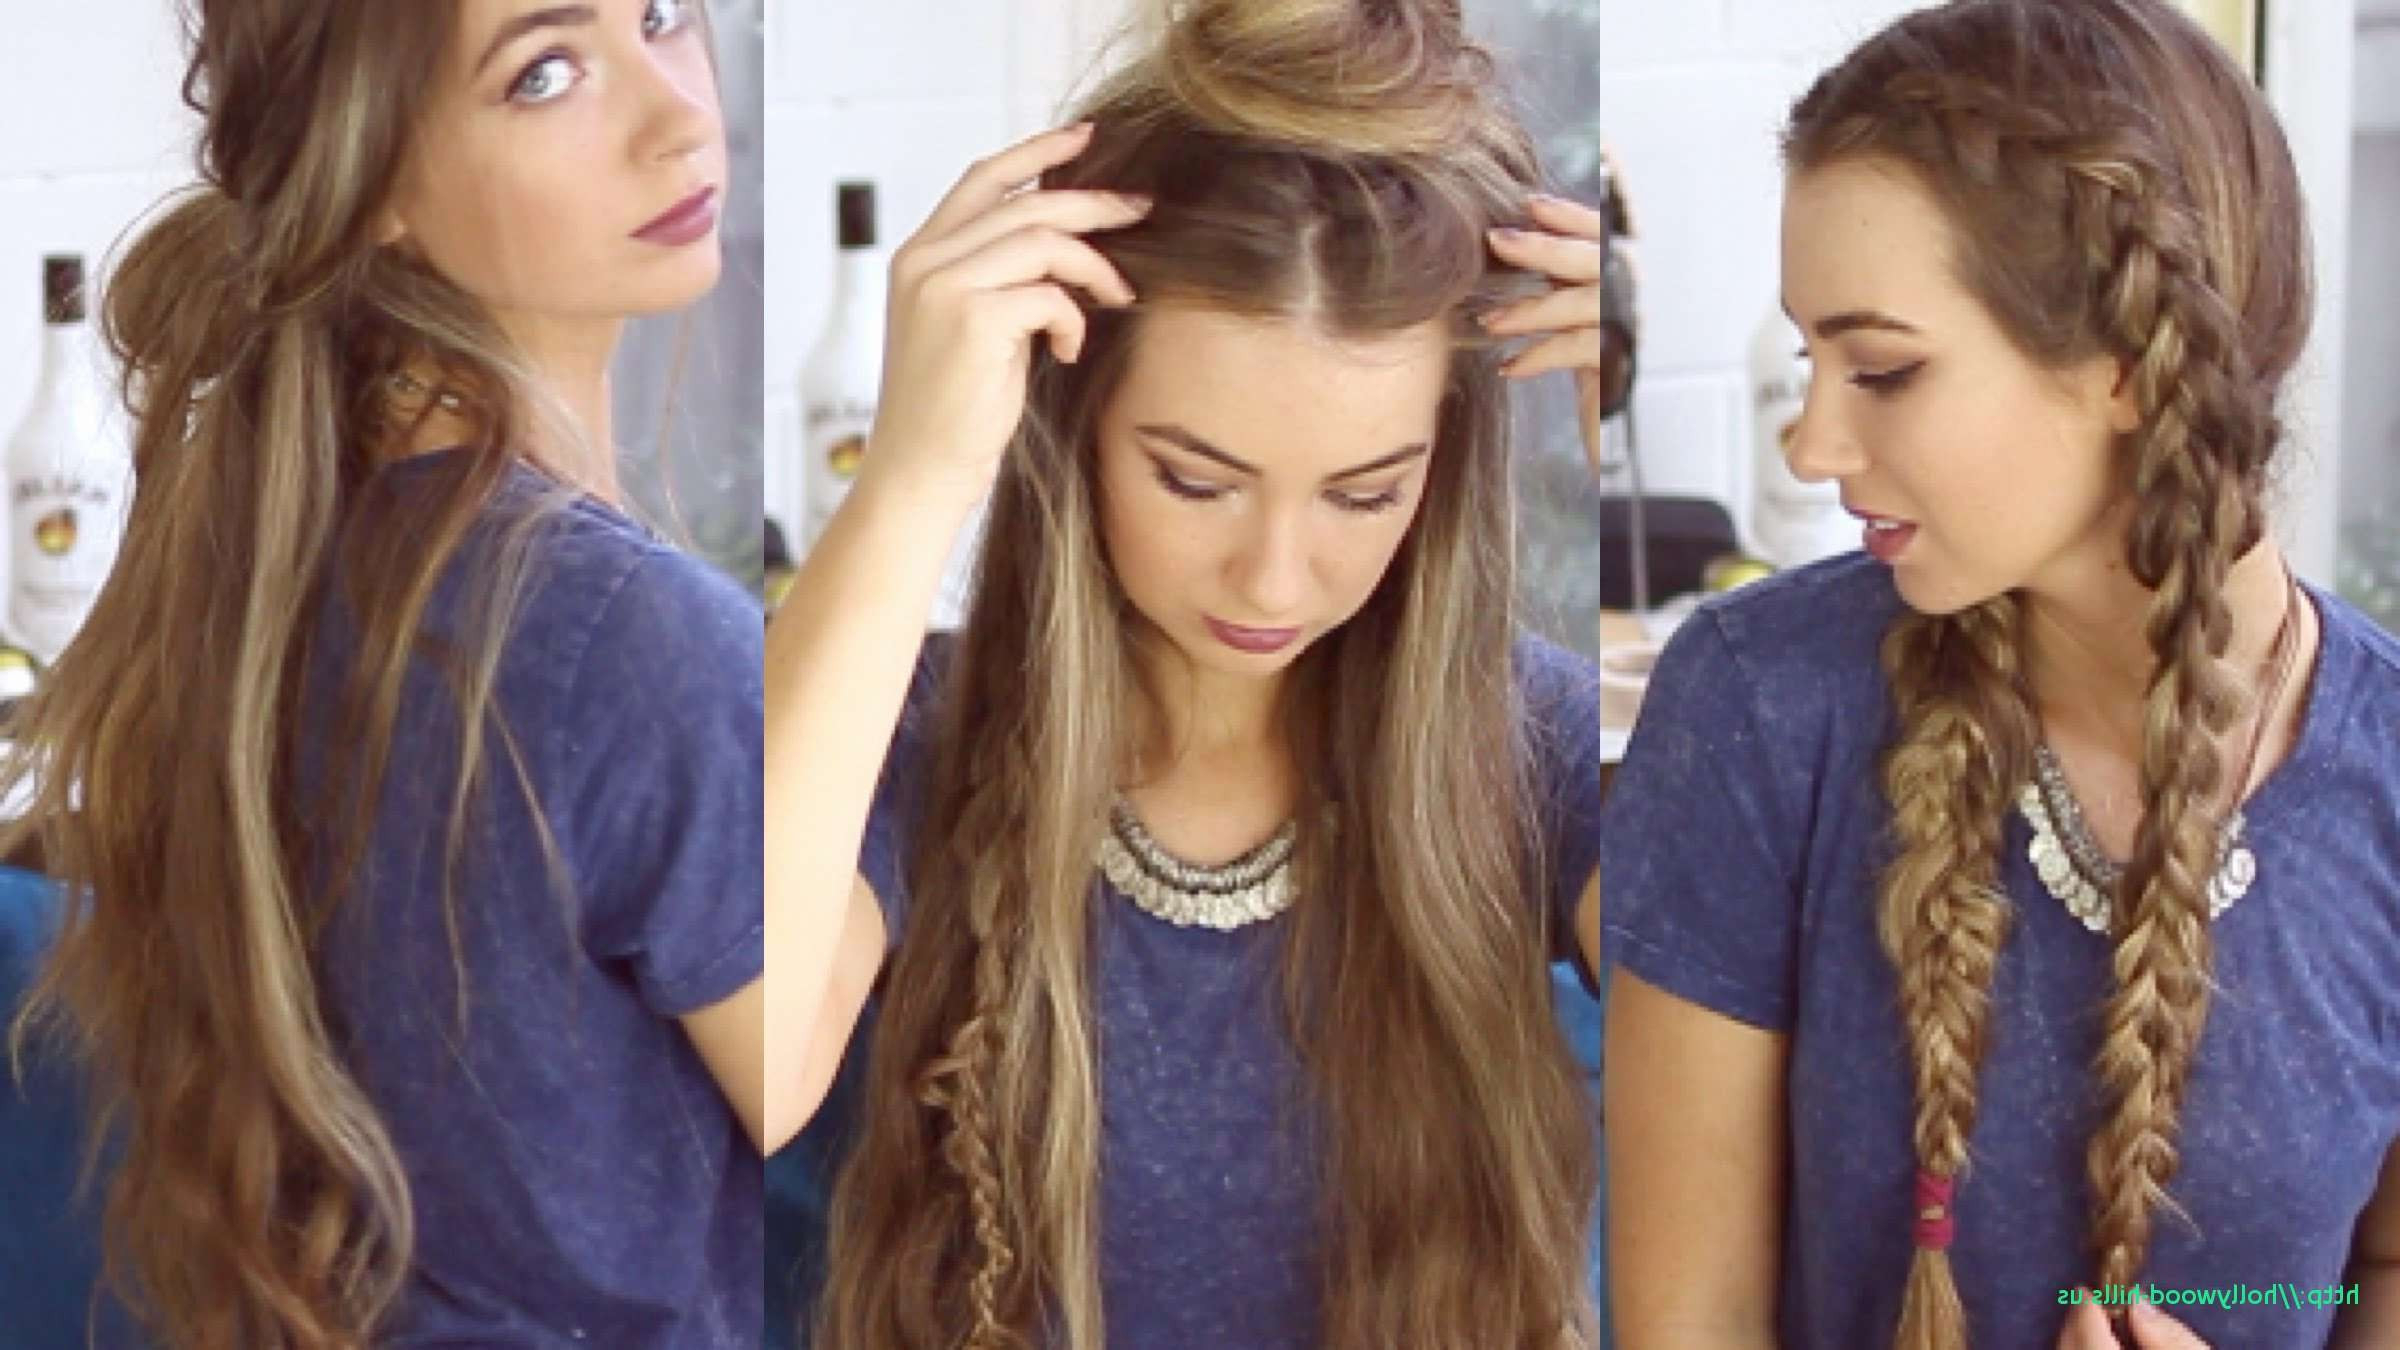 Cute And Simple Hairstyles For Short Hair Elegant Beautiful Cute Pertaining To Short And Simple Hairstyles (View 7 of 20)